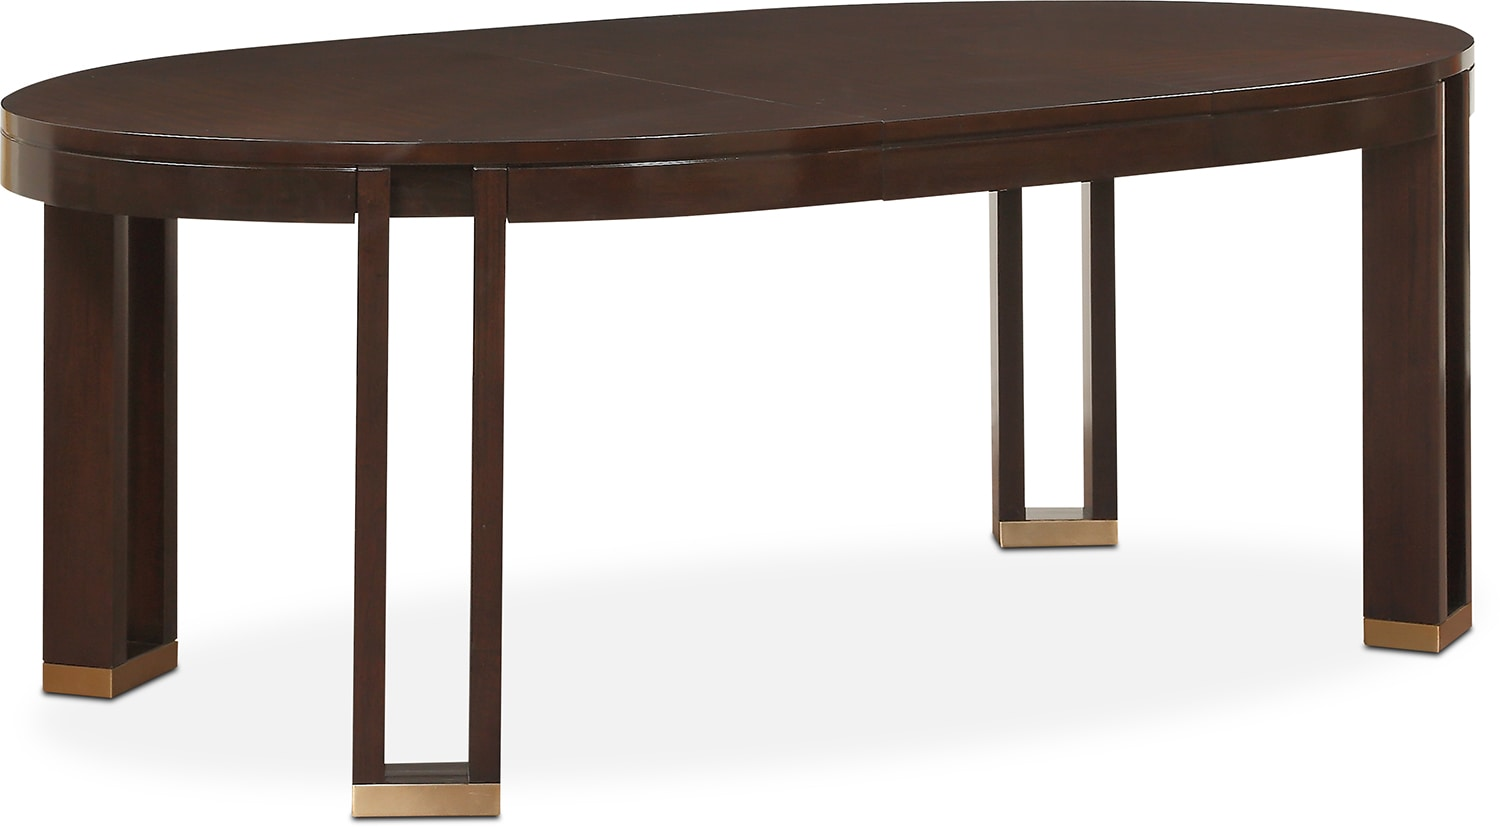 savoy oval table and  side chairs  merlot  value city furniture - click to change image